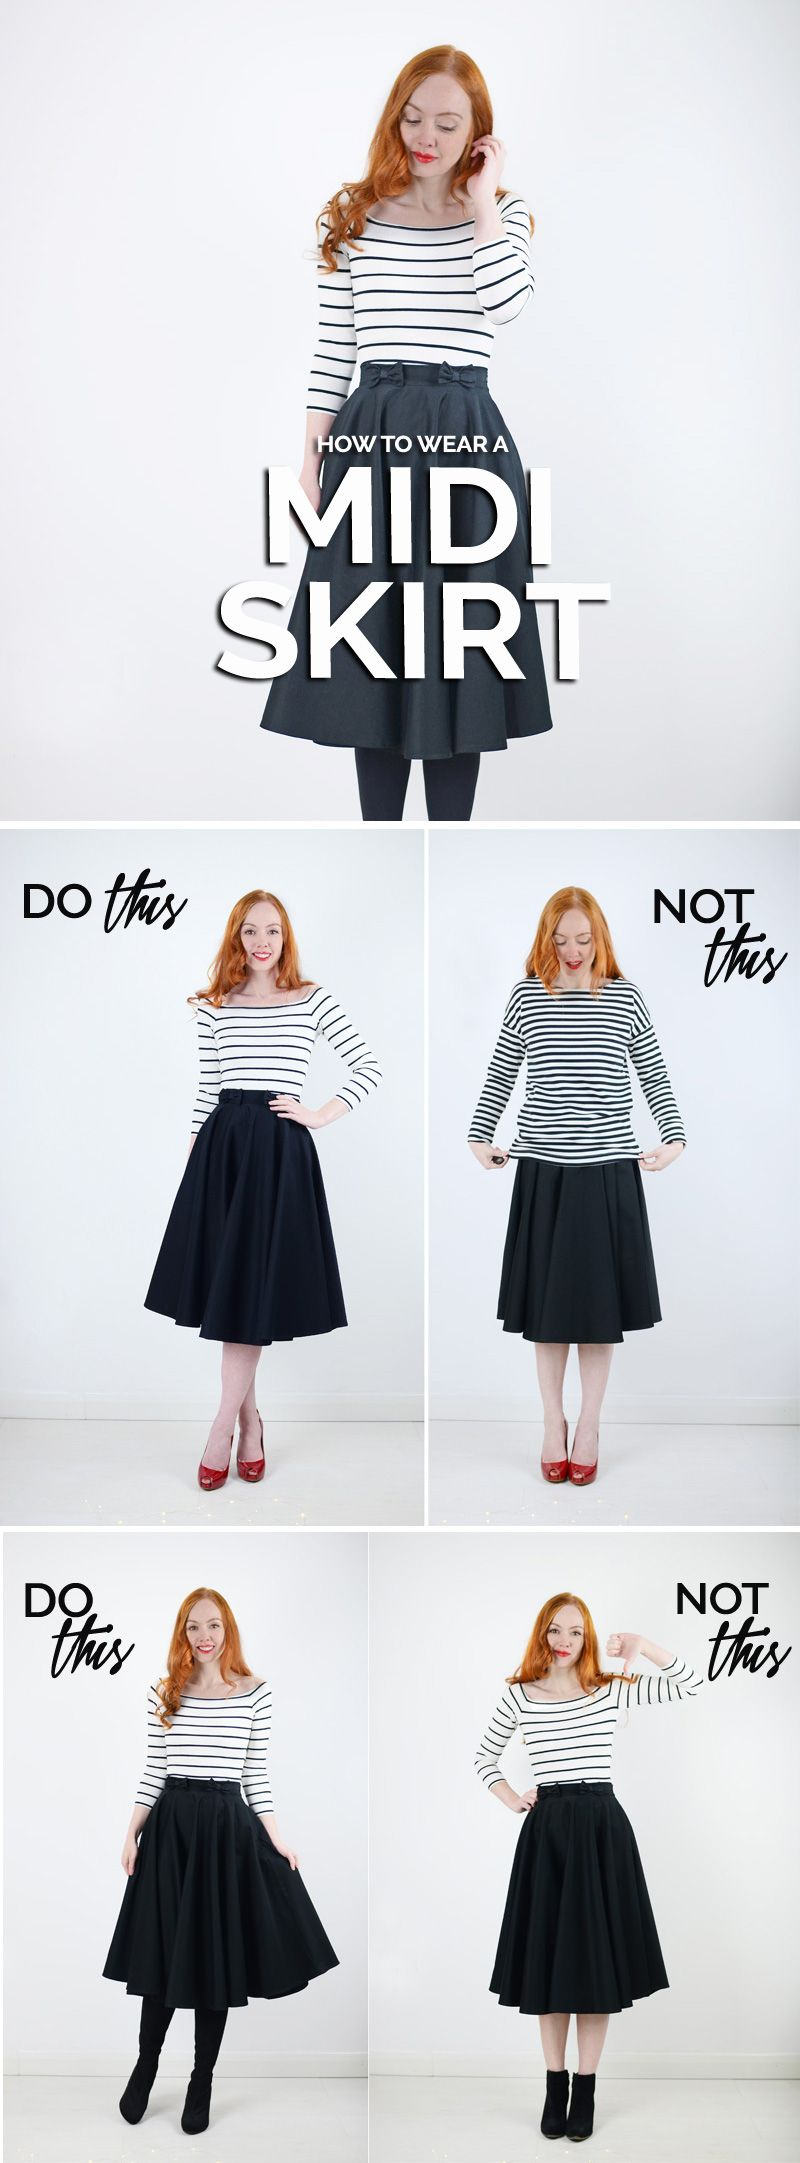 How to wear a midi skirt: style tips and advice for midi skirts #howtowear